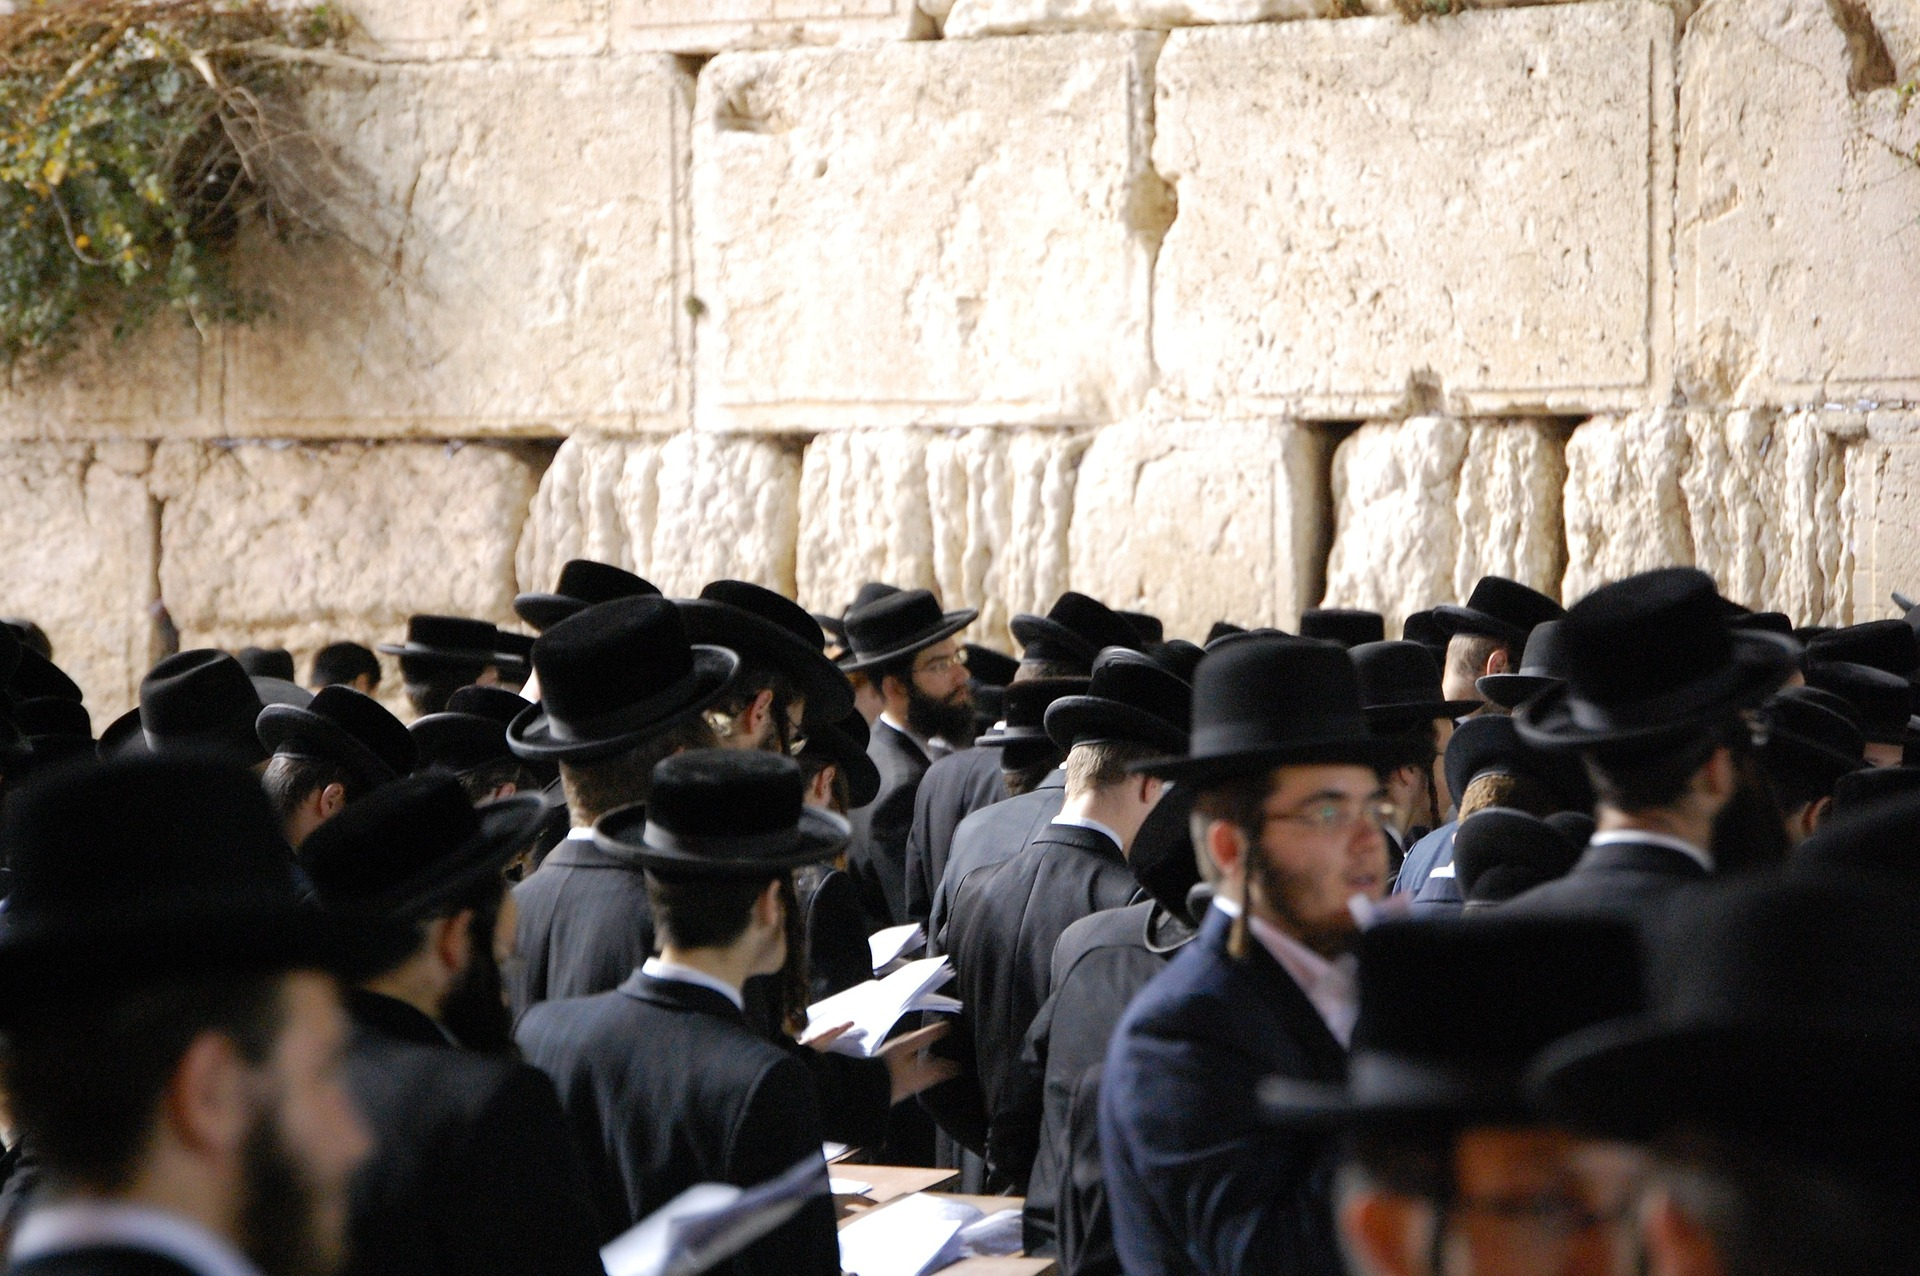 The Evolution of the Jewish People in their Homeland and the Diaspora